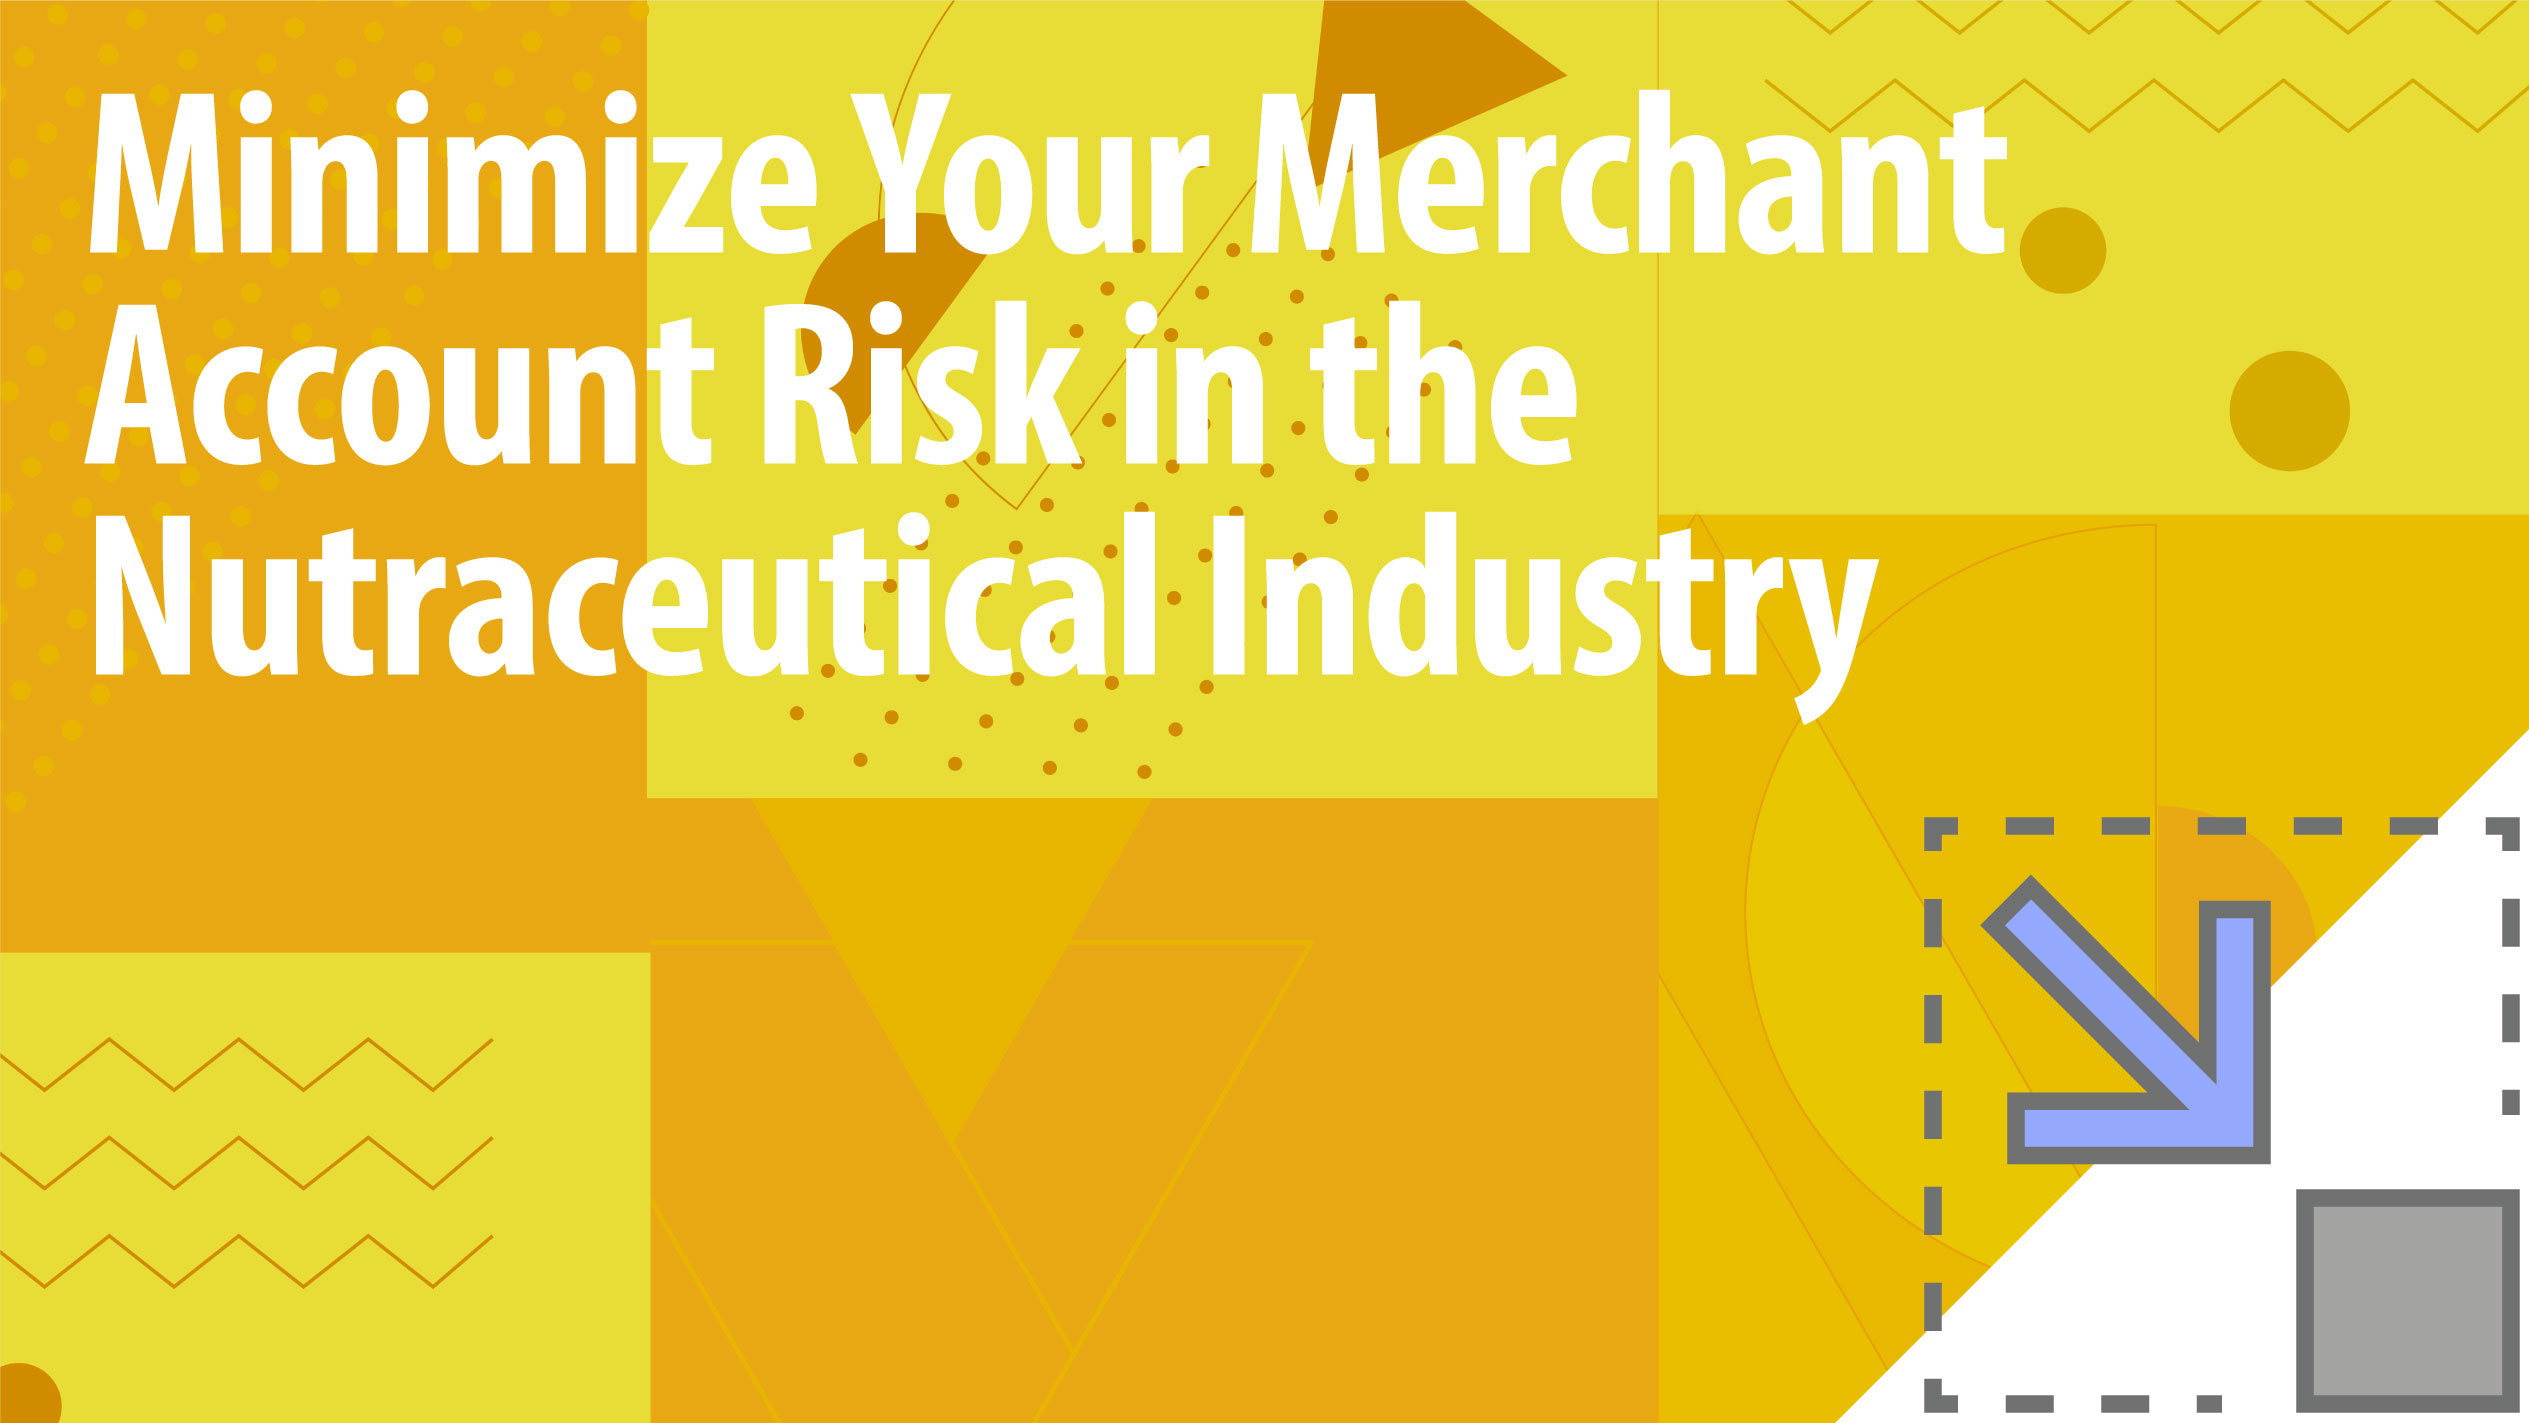 Minimize Your Merchant Account Risk in the Nutraceutical Industry